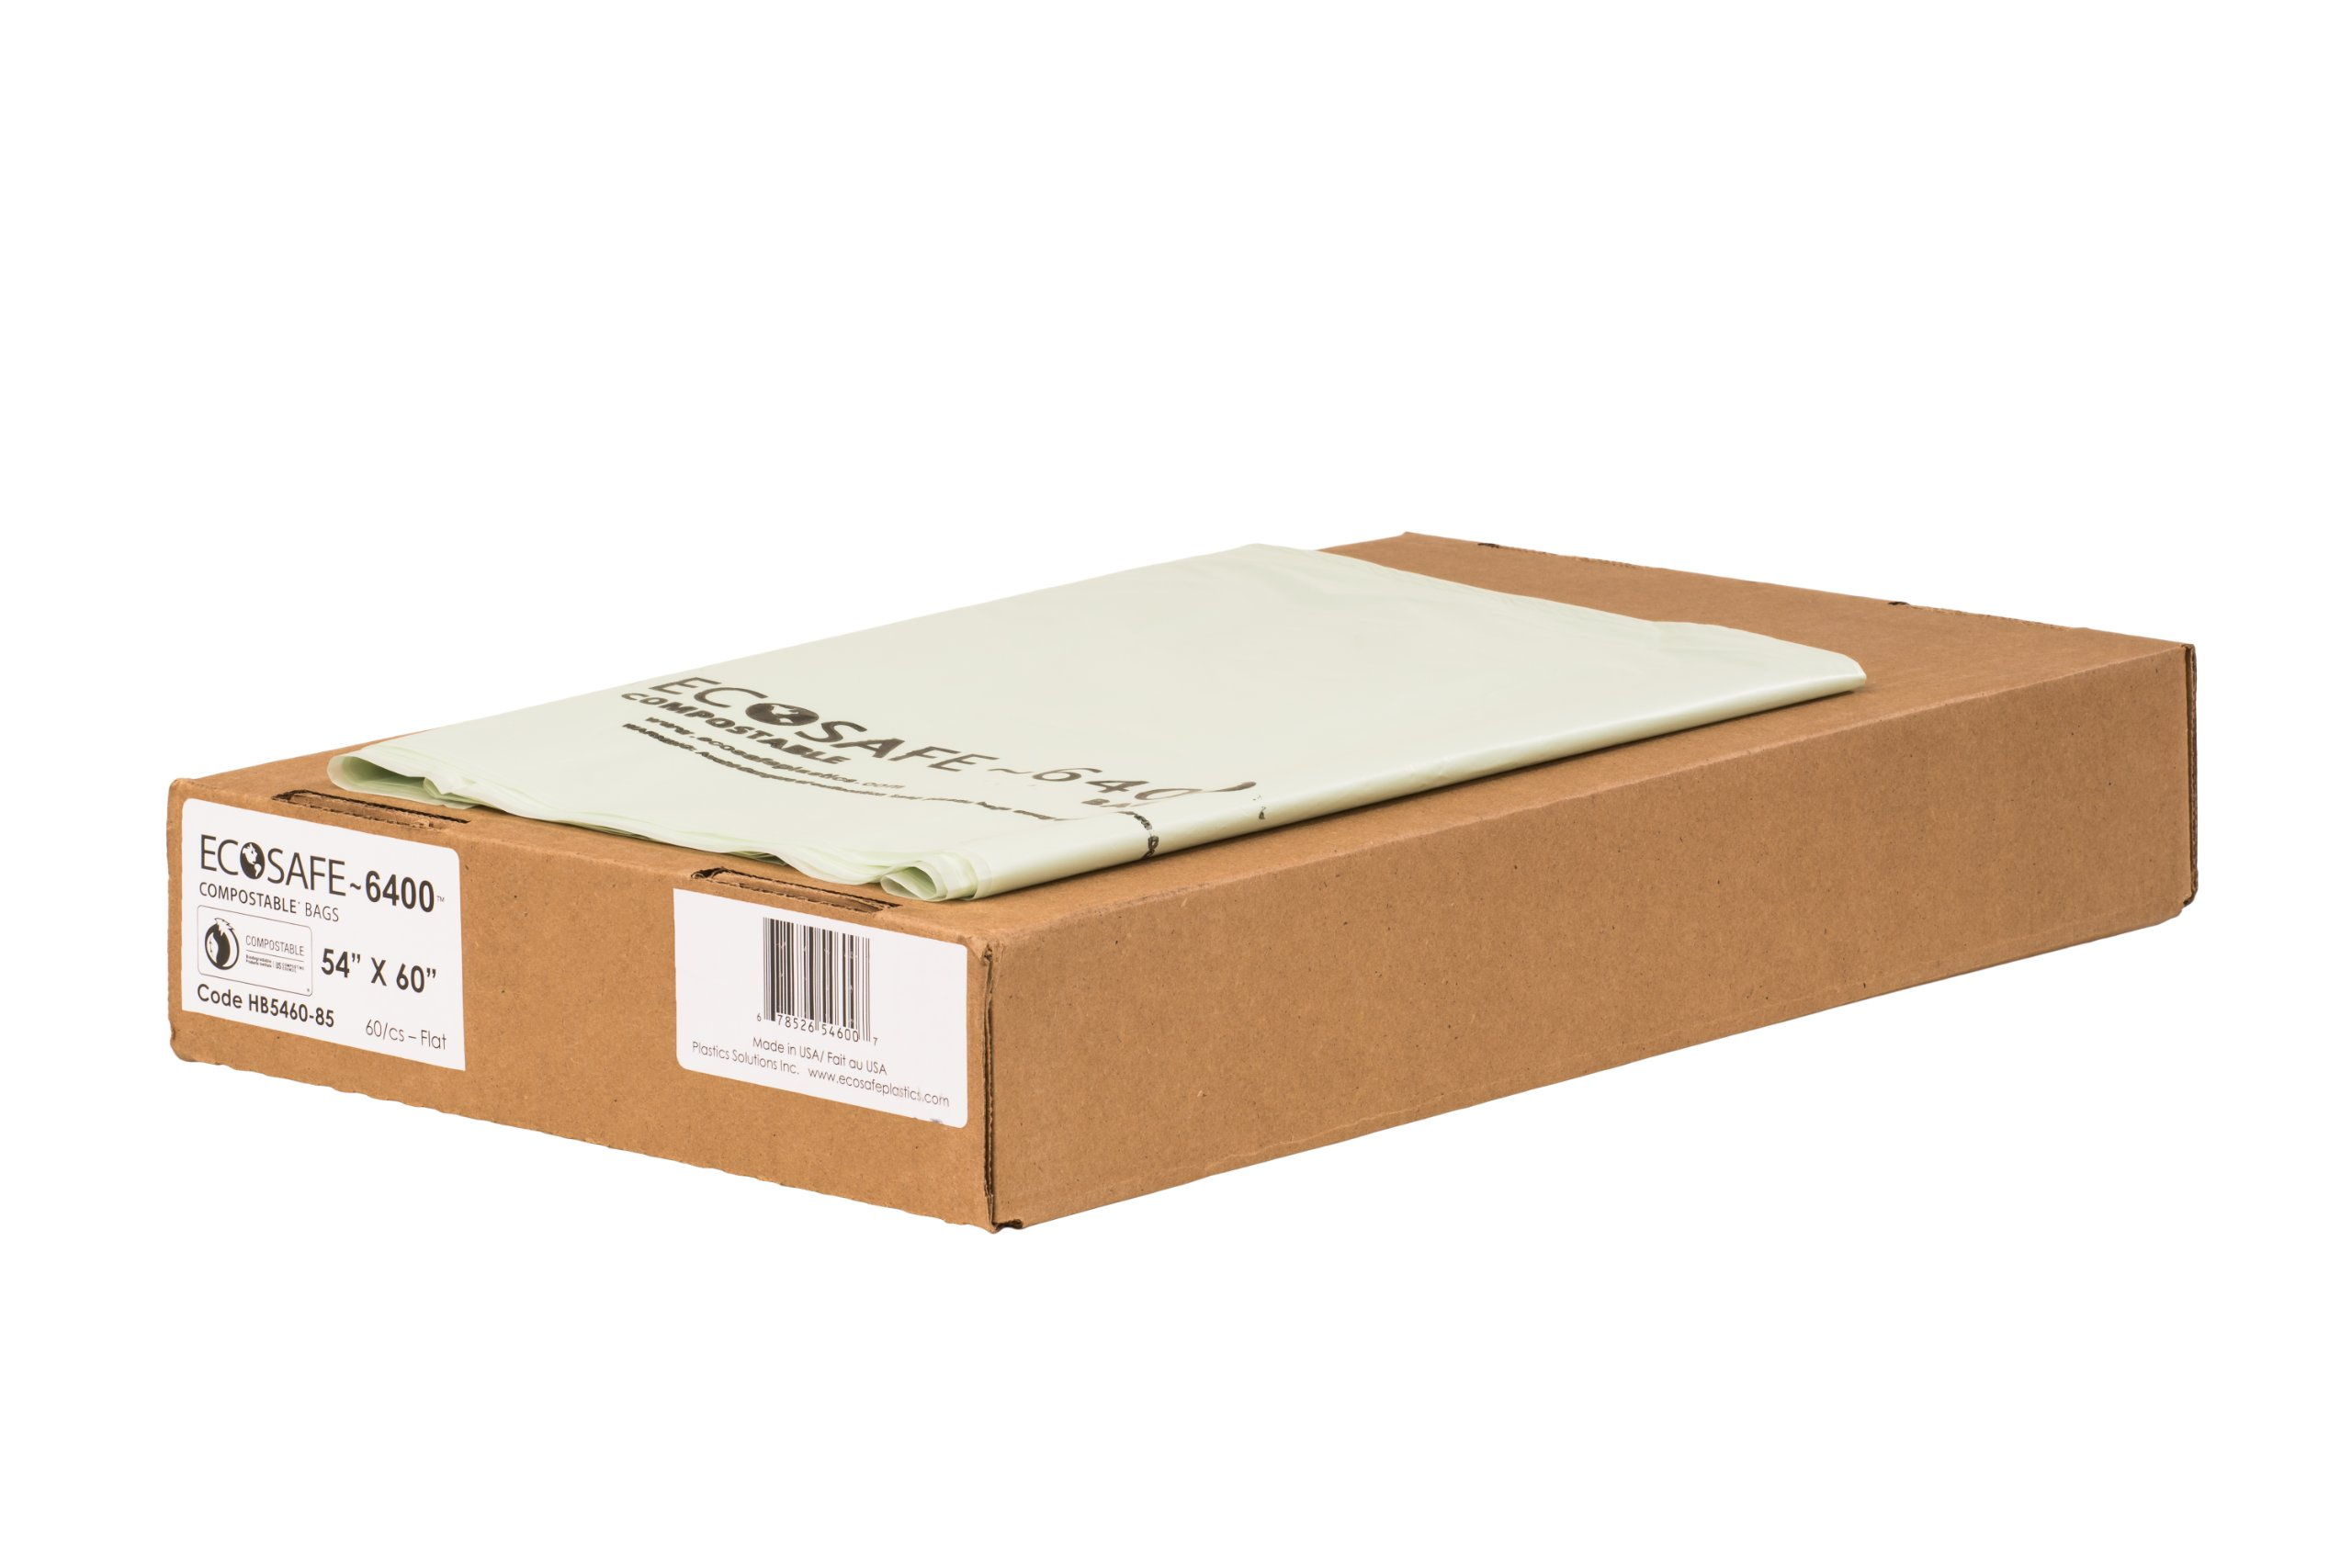 EcoSafe-6400 HB5460-85 Compostable Bag, Certified Compostable, 90-Gallon, Green (Pack of 60)